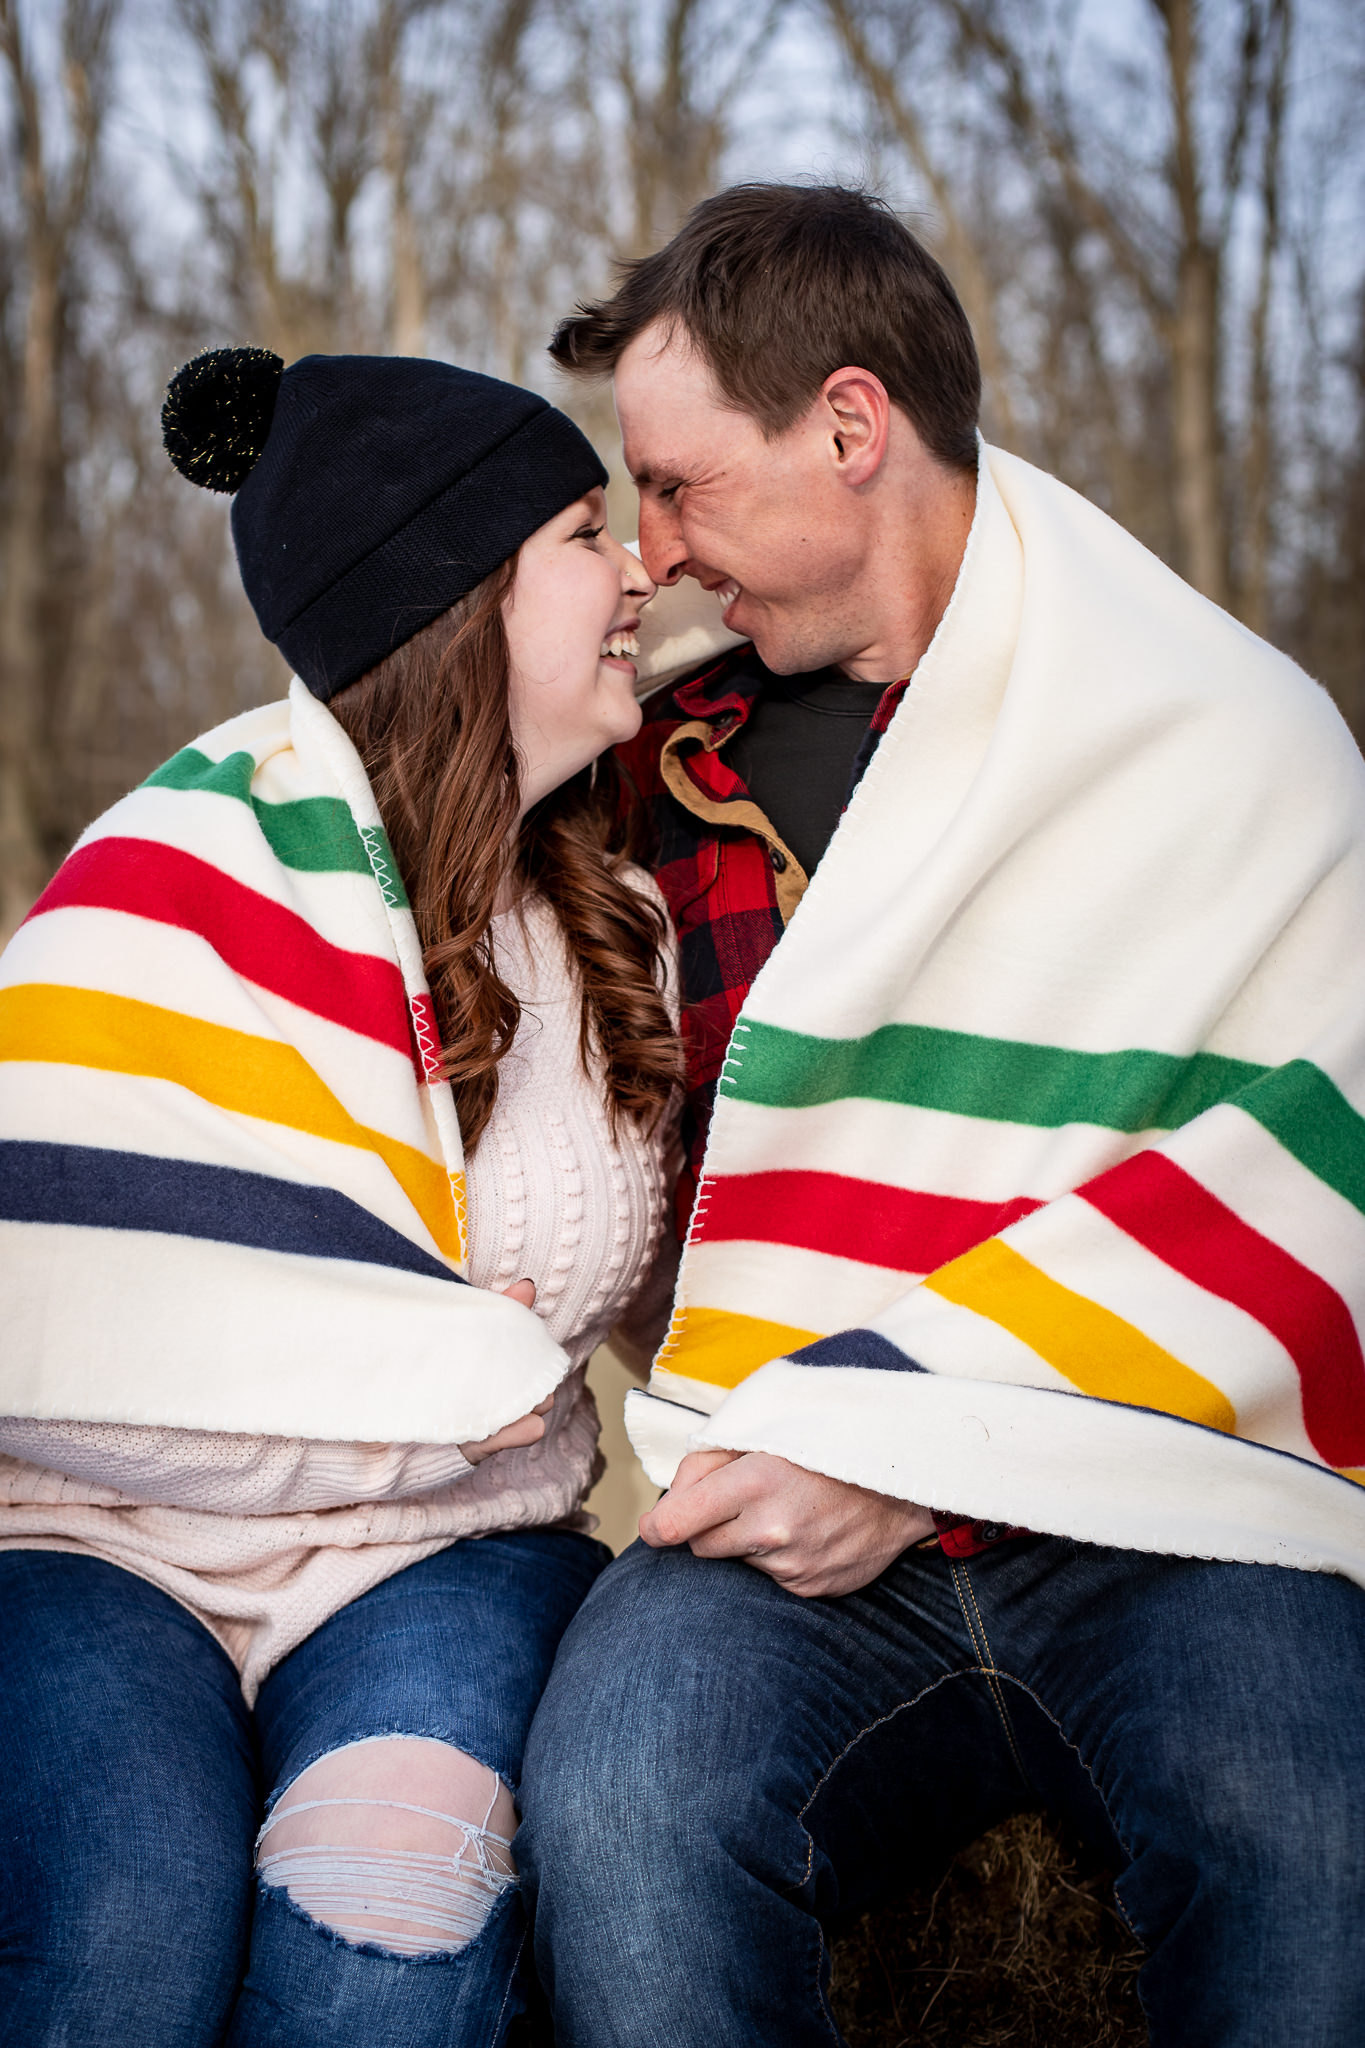 ice-skating-hockey-engagement-photos-16.jpg